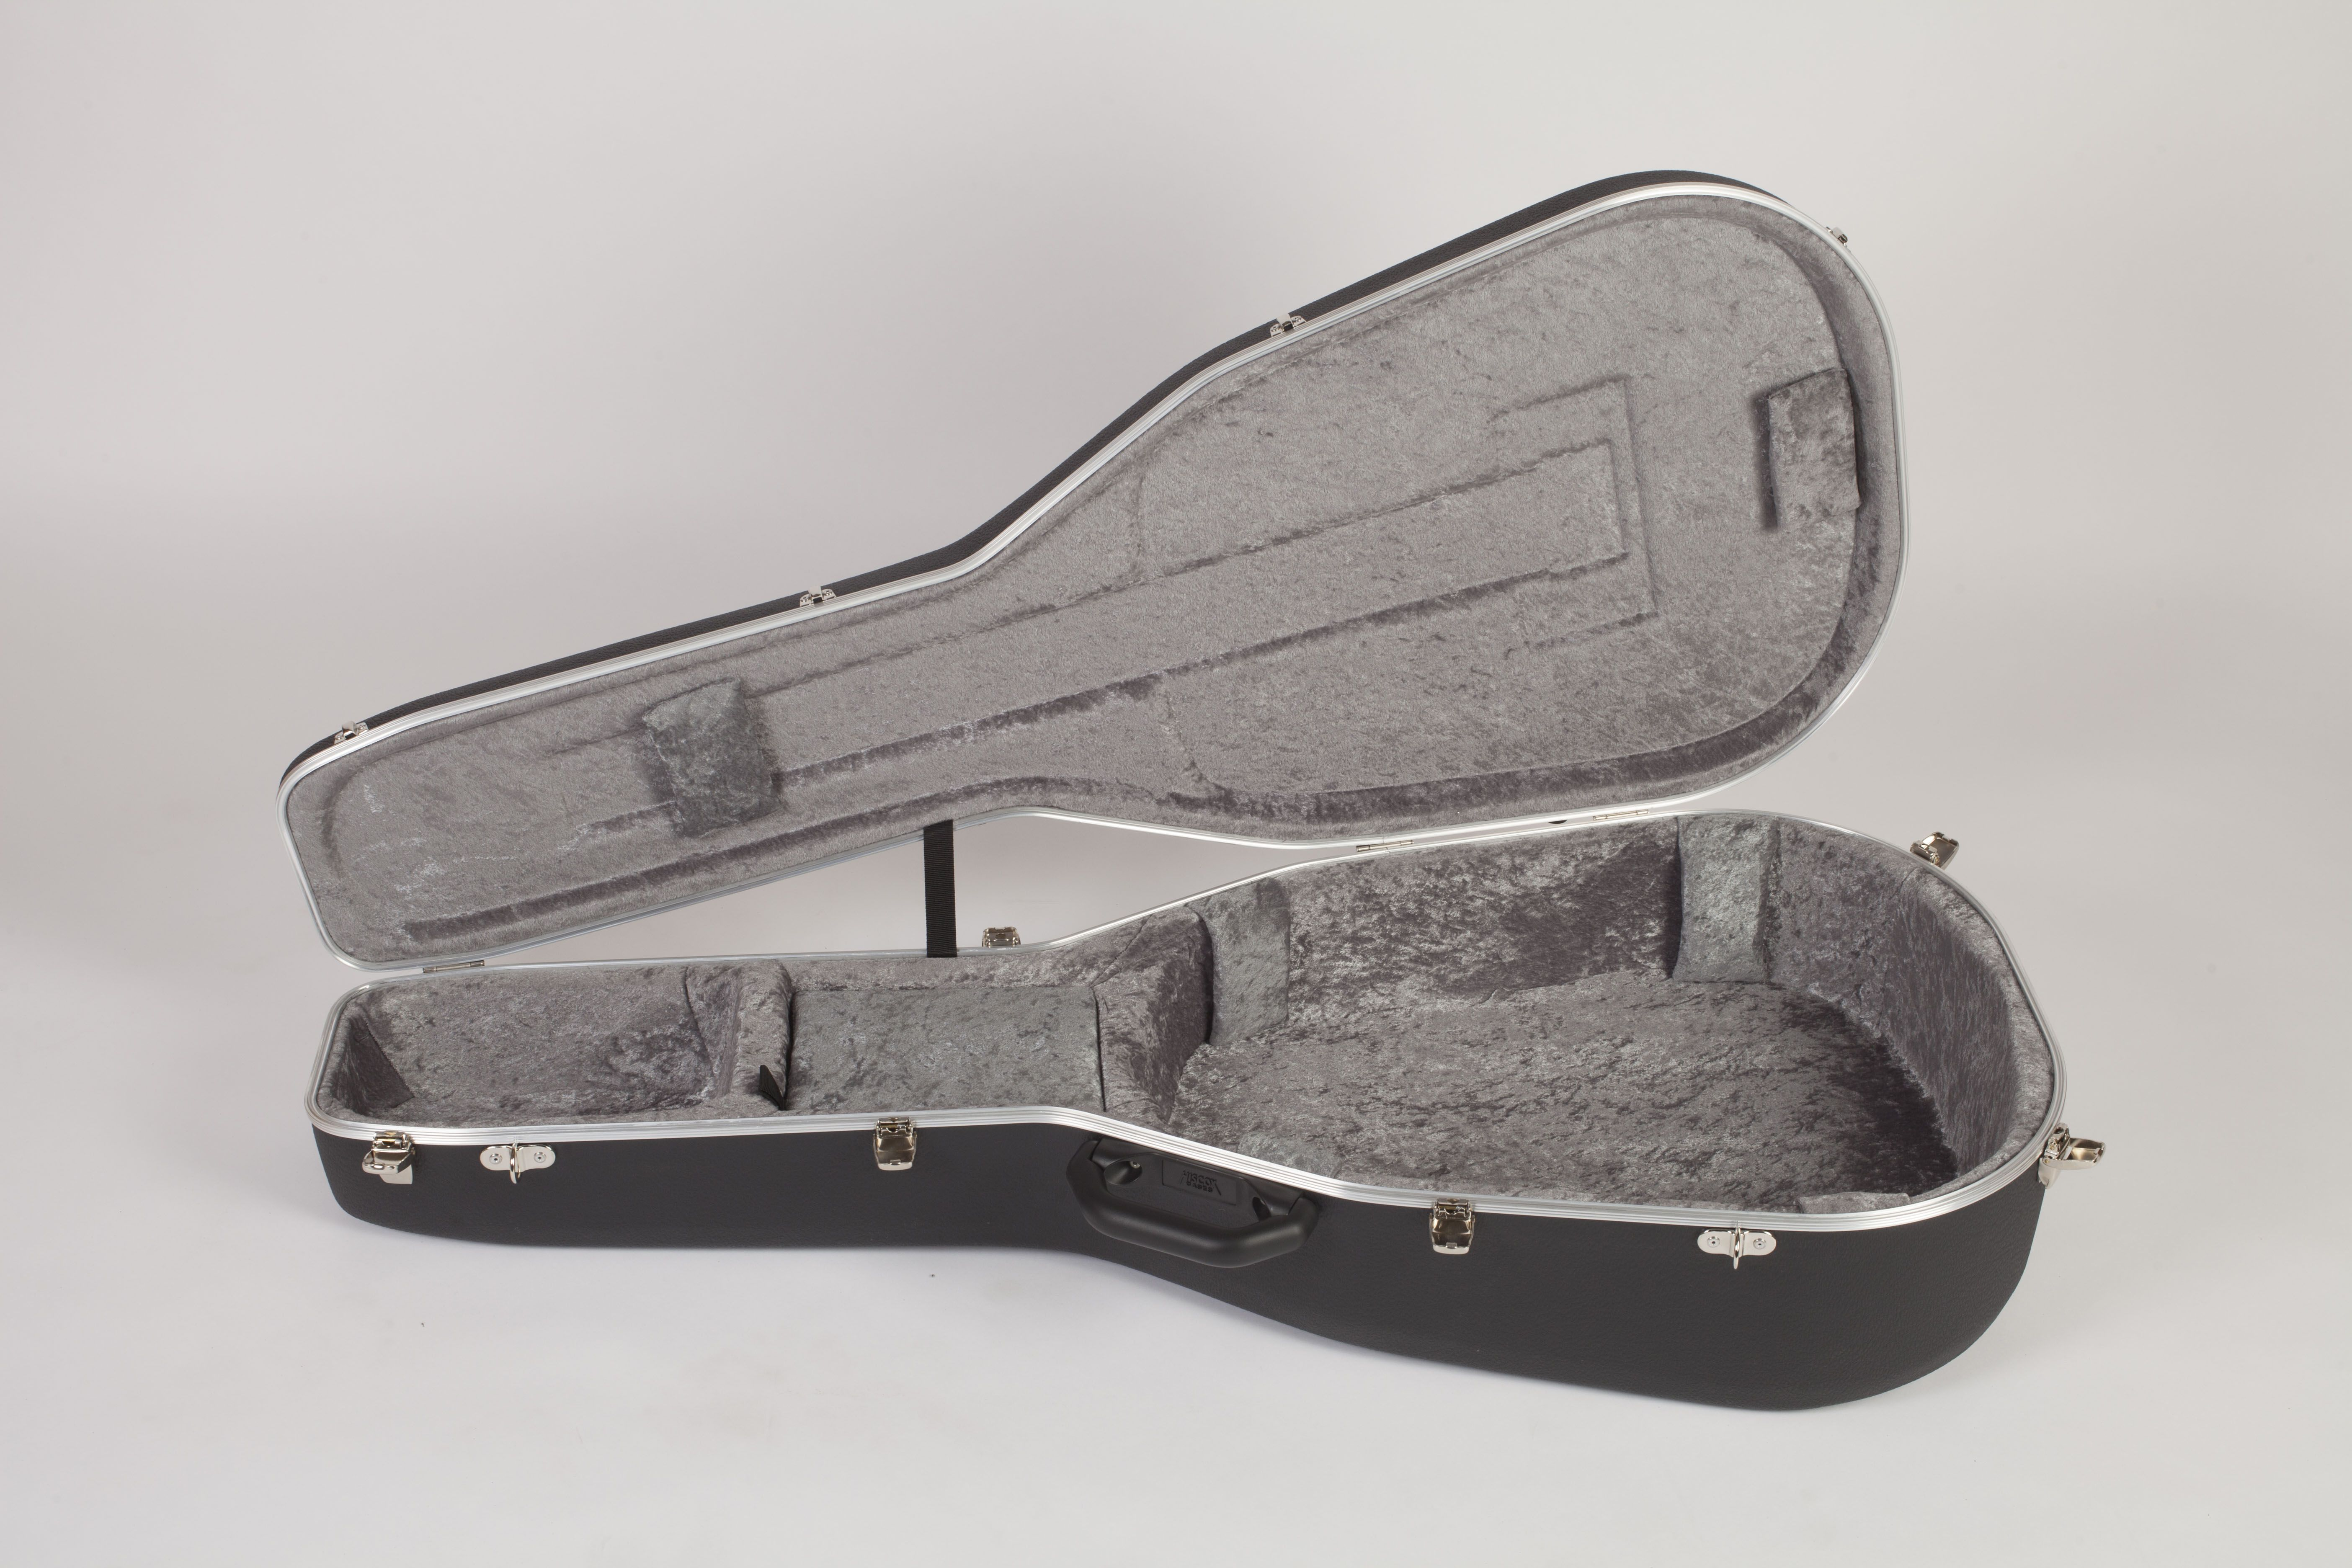 Pro Ii Bowl Back Acoustic Guitar Case Hiscox Cases Hard Shell Case Protect Your Guitar Open Case Grey And B Guitar Case Acoustic Guitar Case Acoustic Guitar